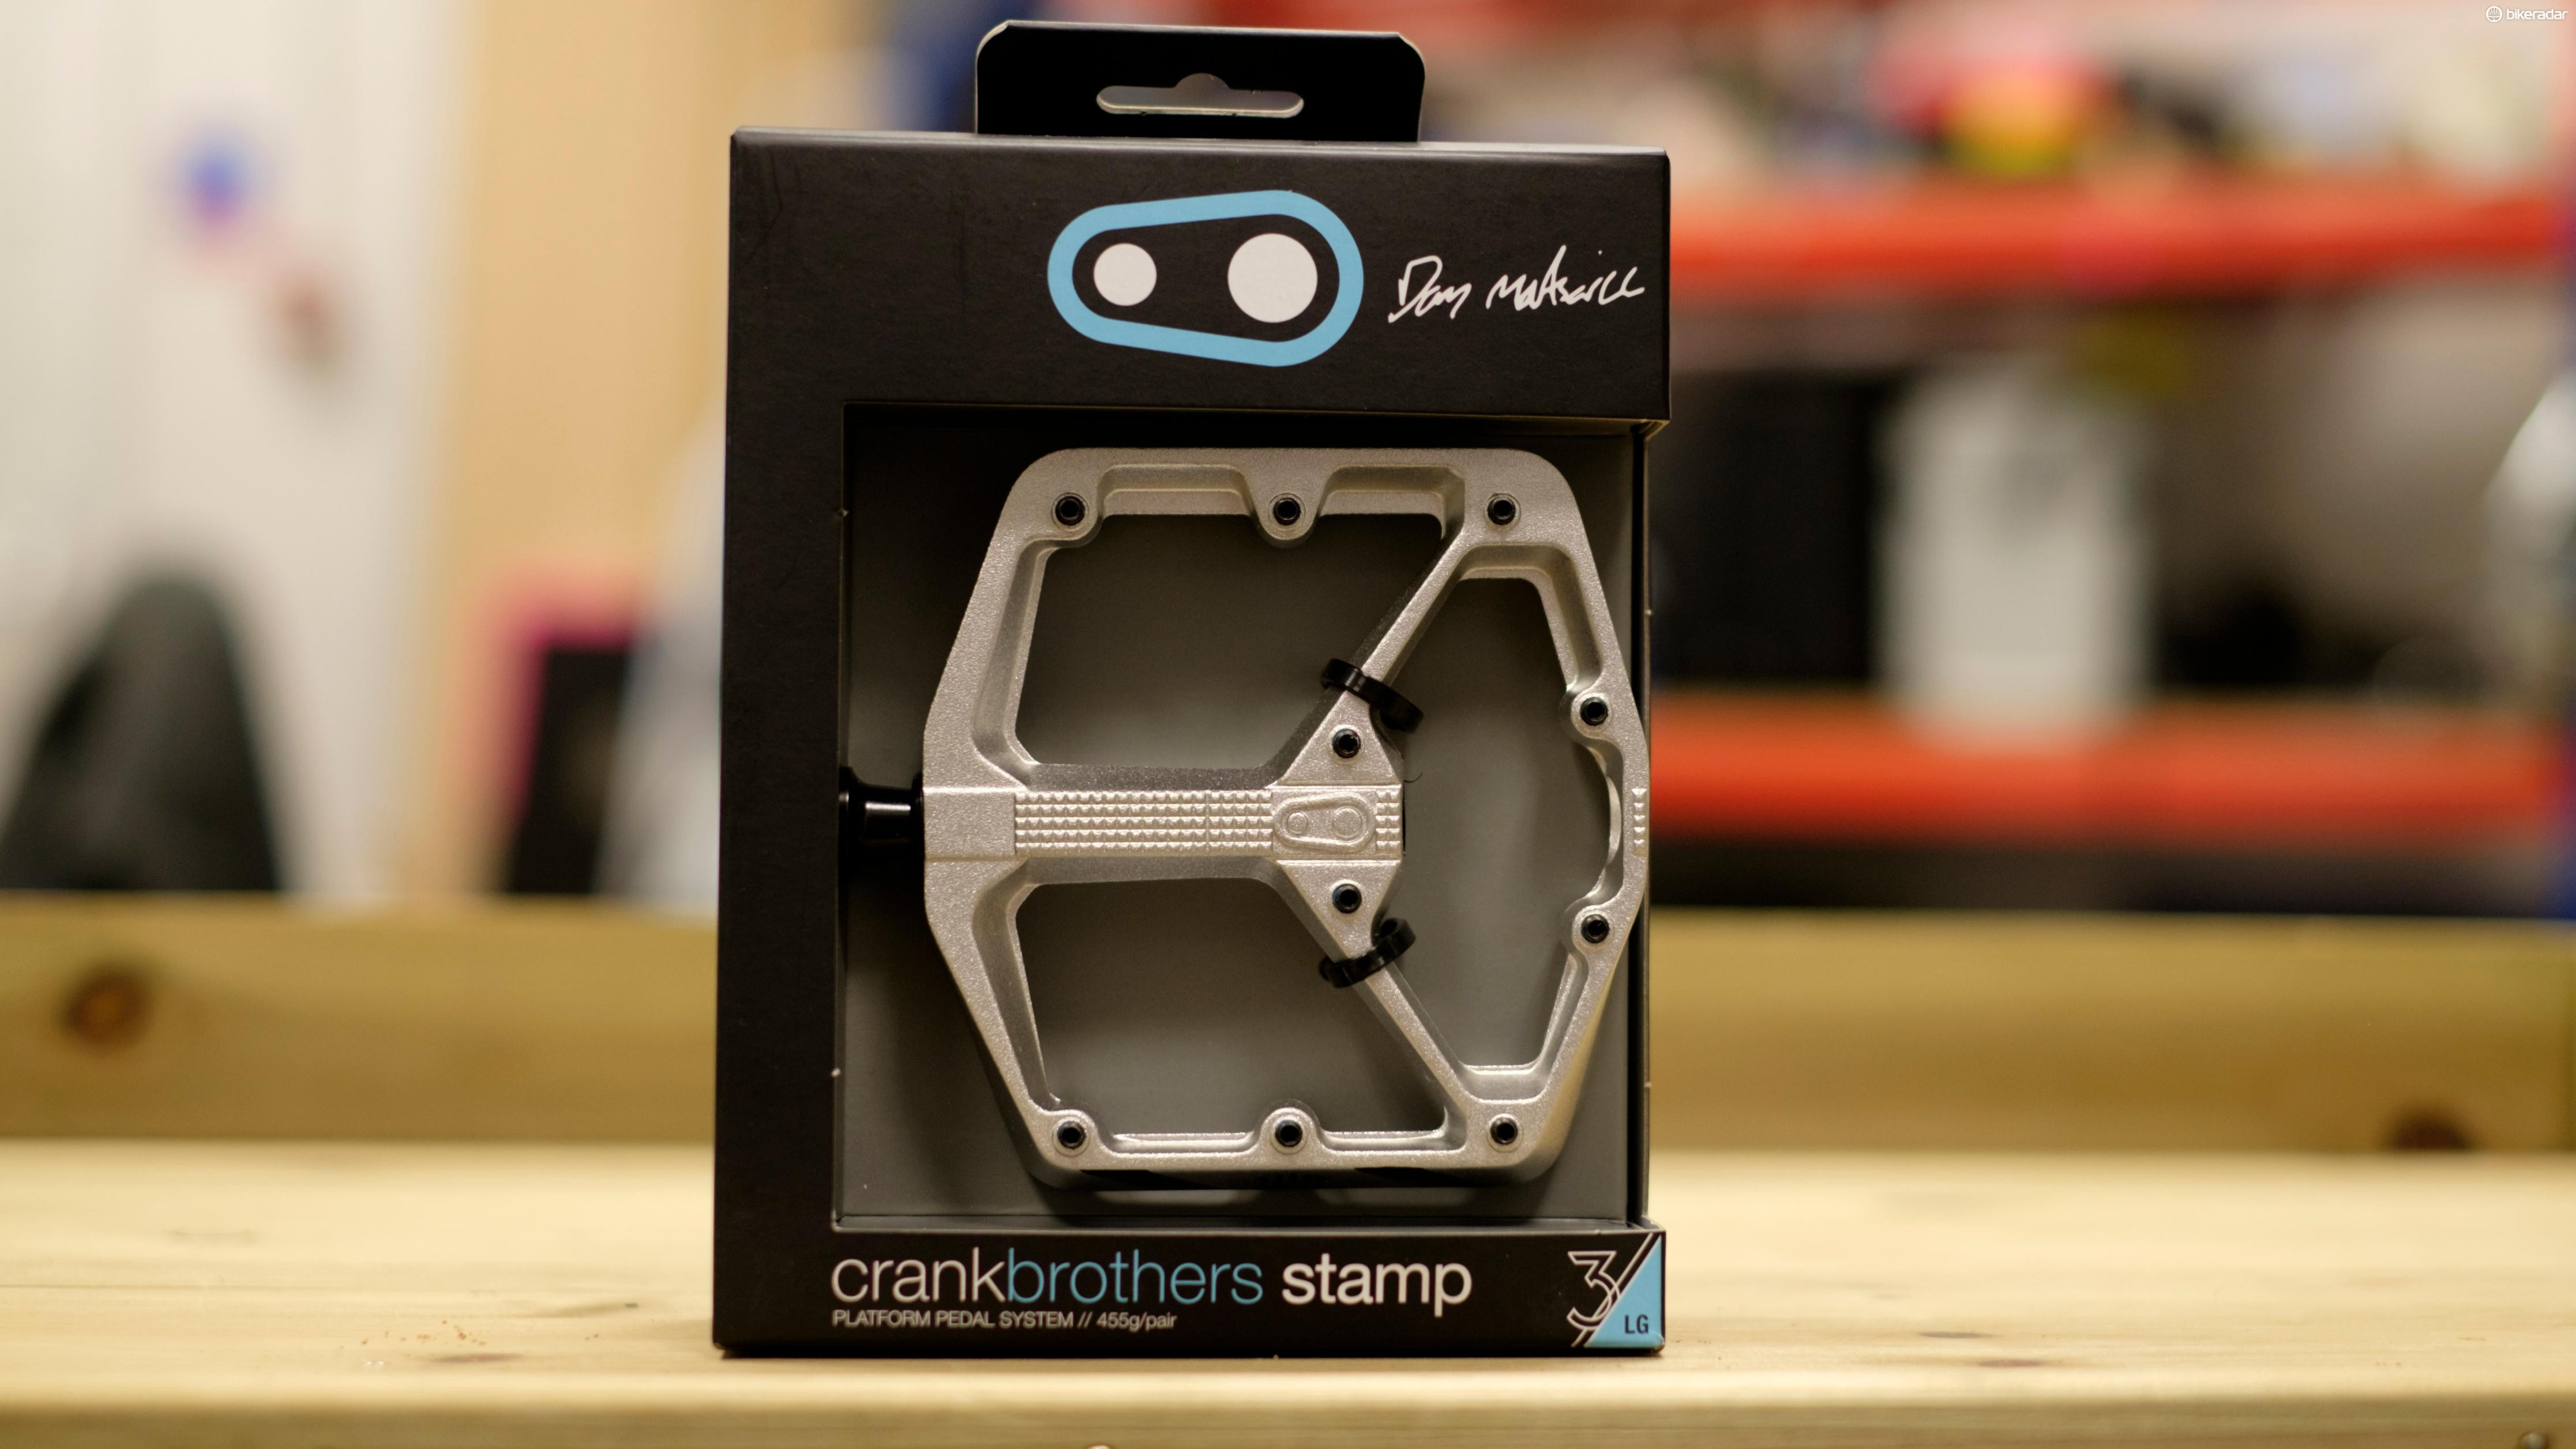 The Danny MacAskill signature pedal uses a unique silver finish and holds no premium over a regular Stamp 3